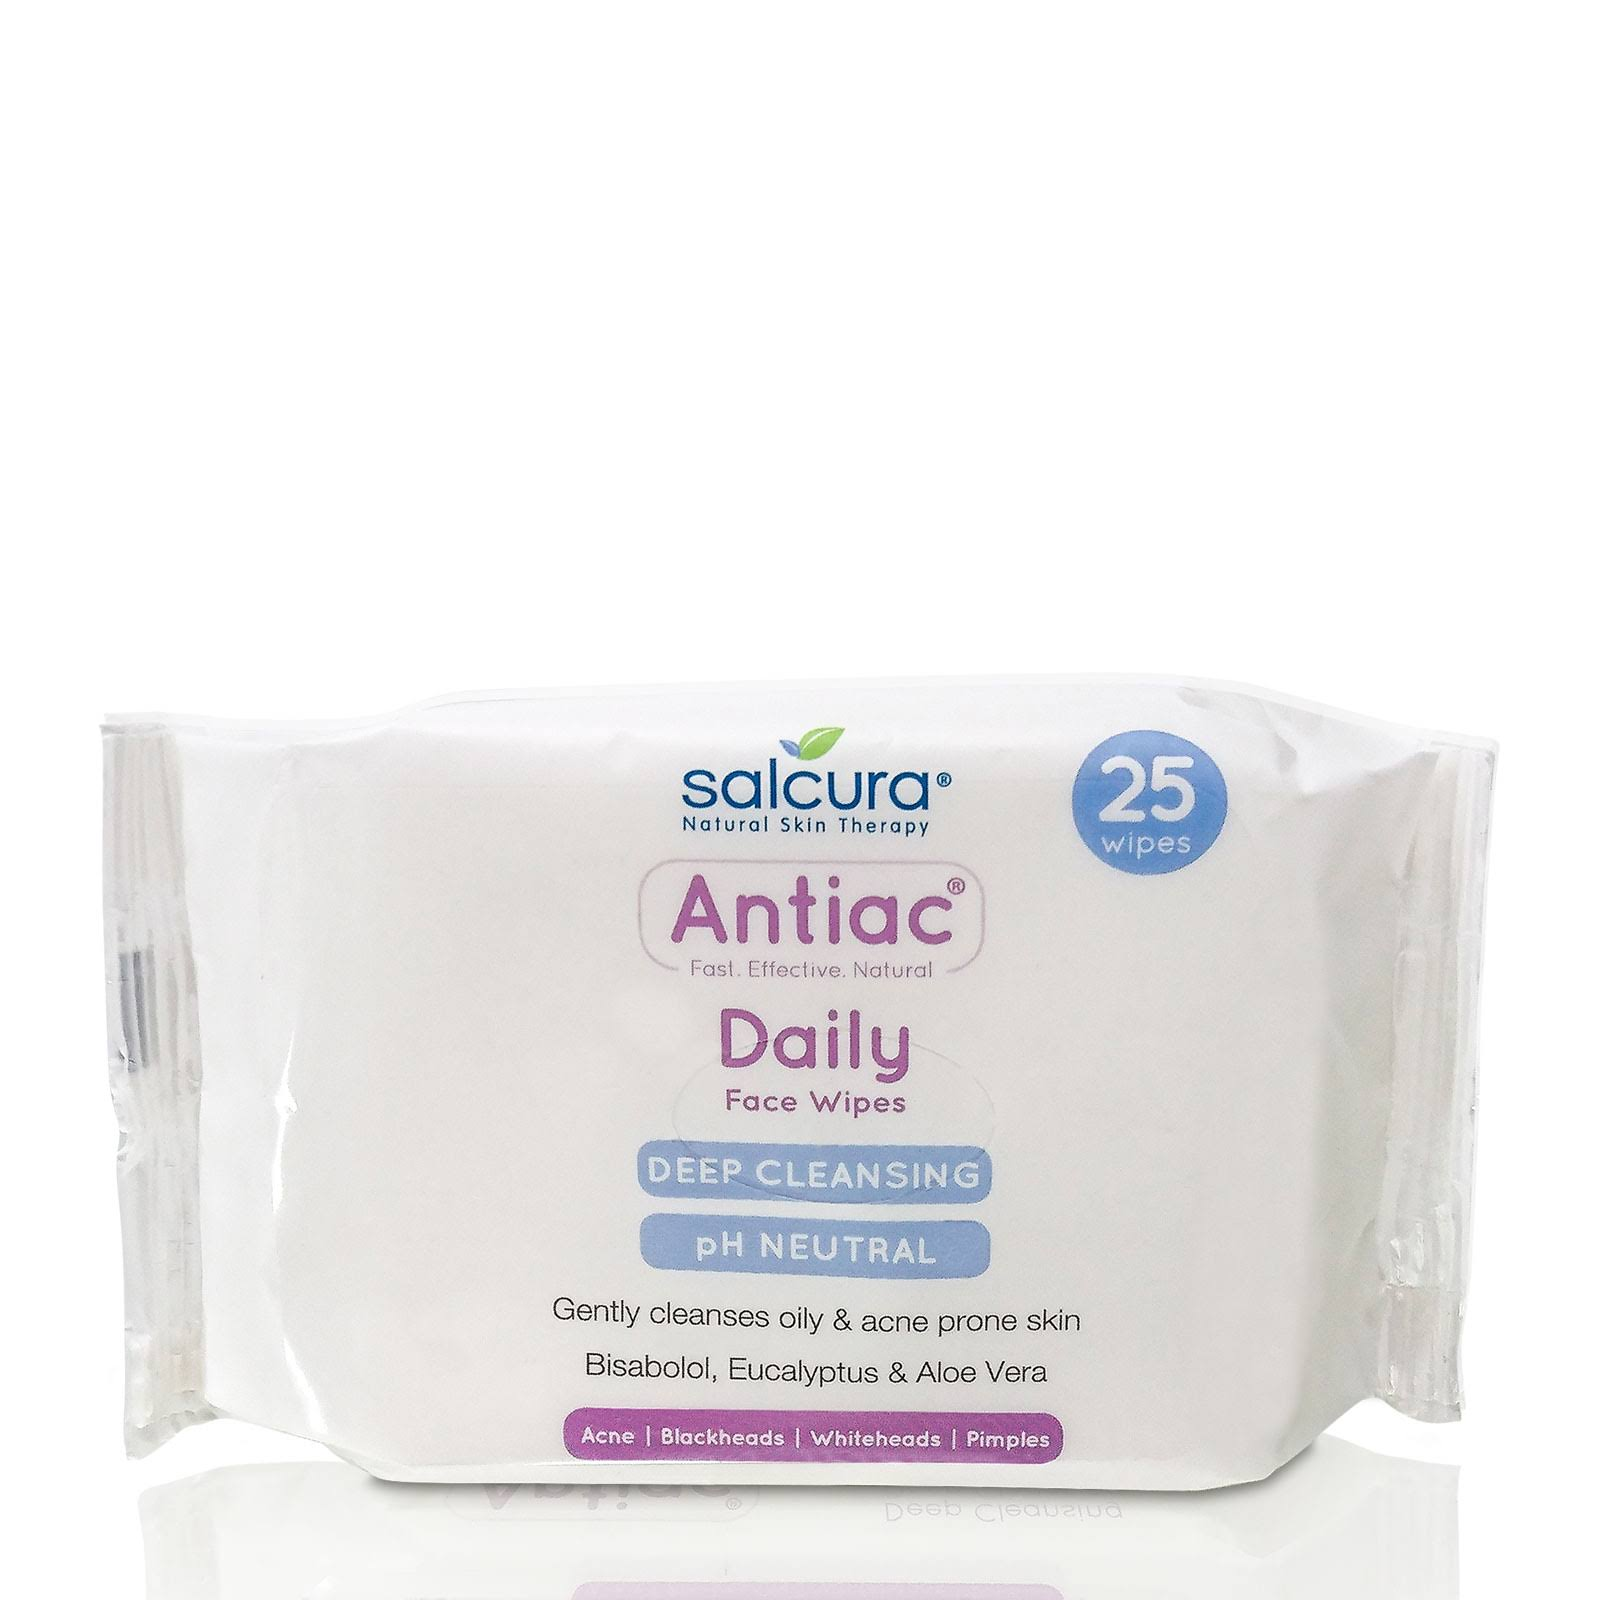 Salcura Antiac Daily Face Wipes - 25 Pack